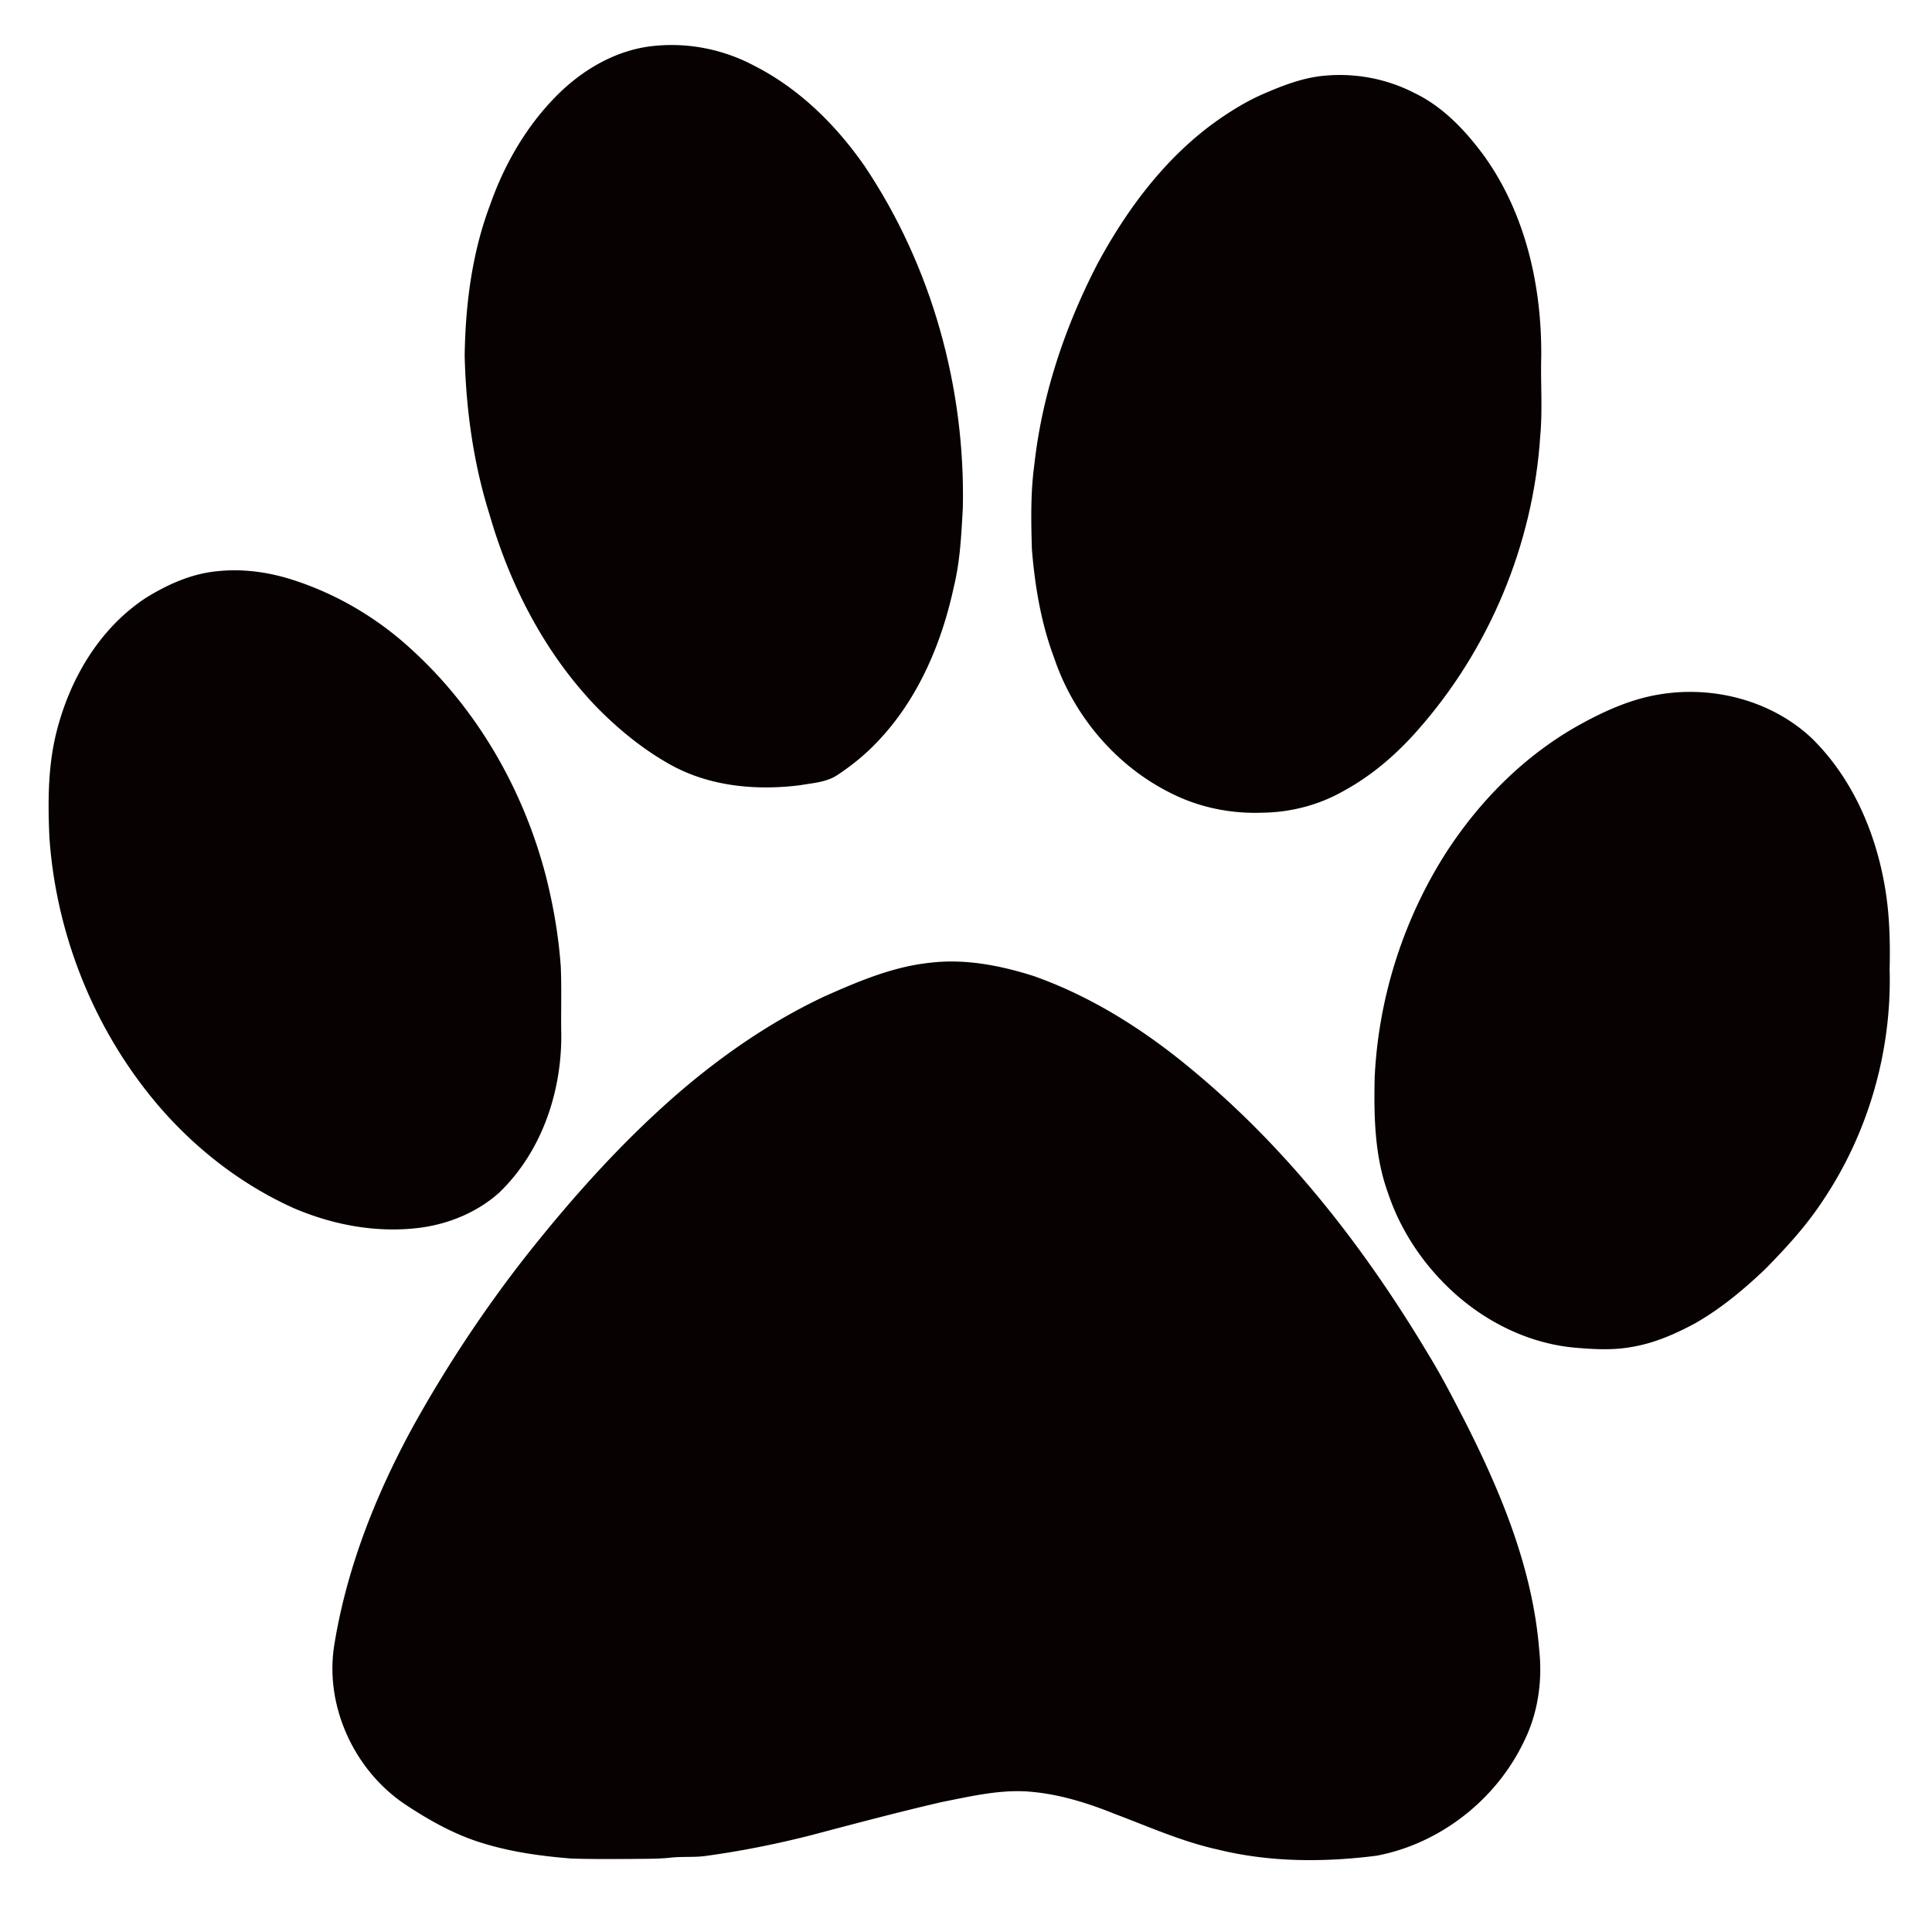 Transparent paw clear background. Panther print clip art